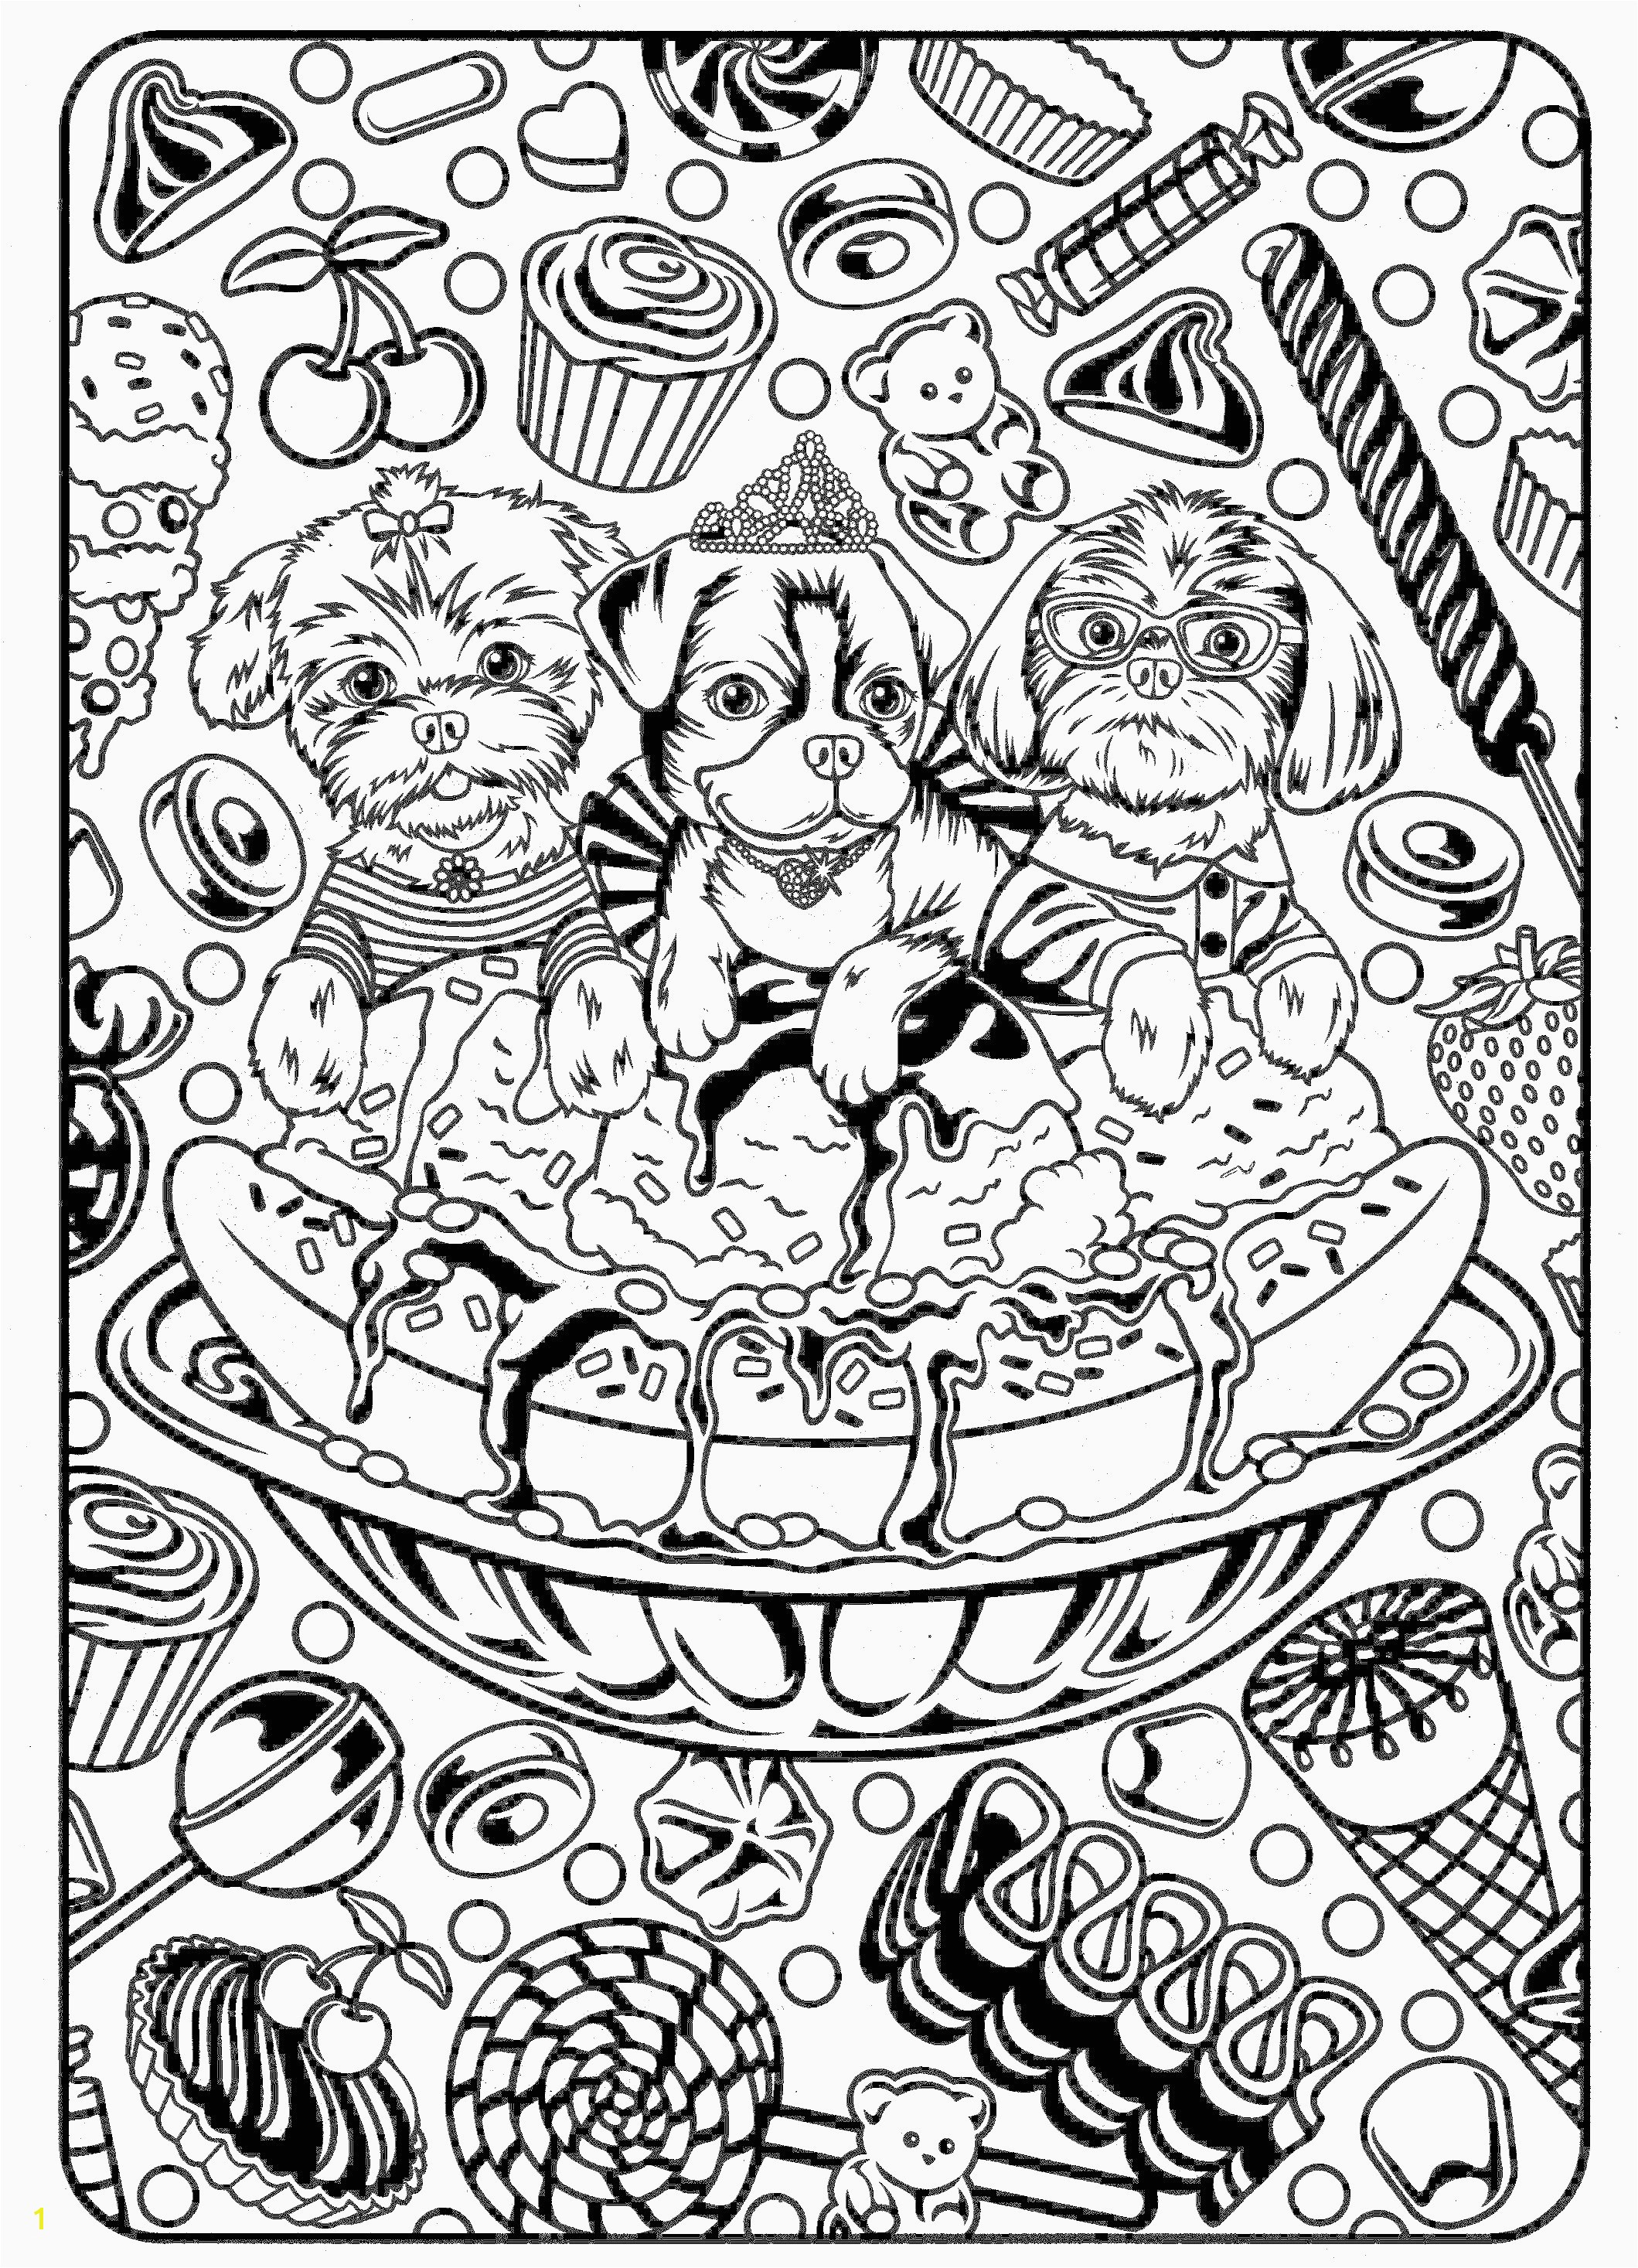 Tmnt Coloring Pages Tmnt Coloring Books Awesome Coloring Pages Line New Line Coloring 0d